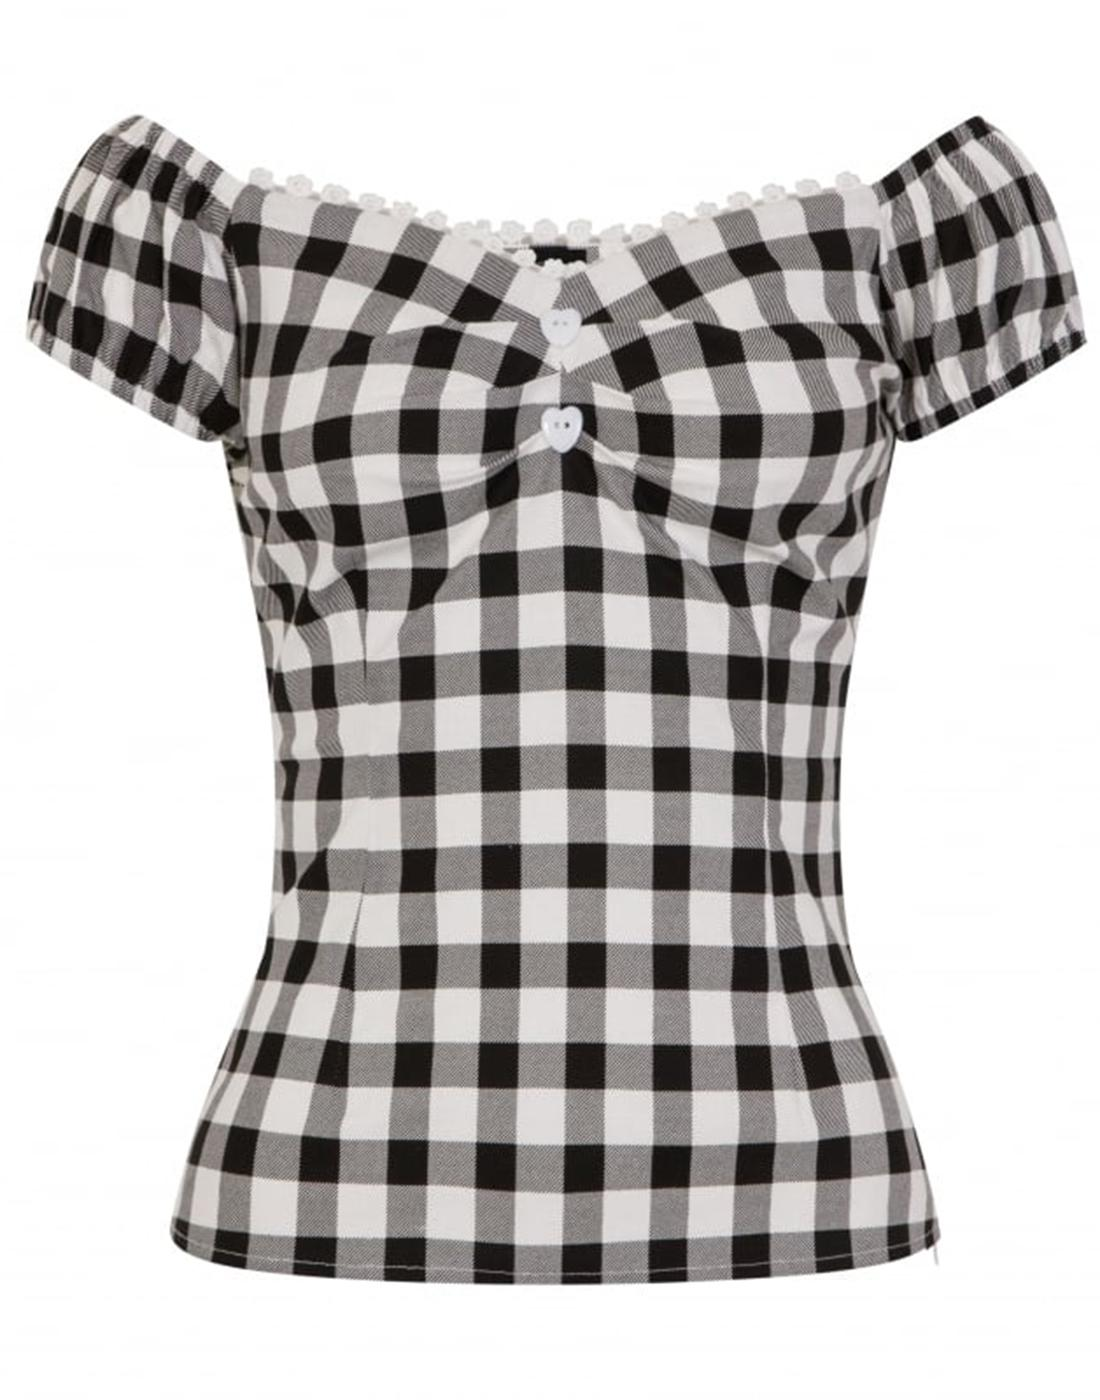 Dolores COLLECTIF Retro Vintage 50s Gingham Top